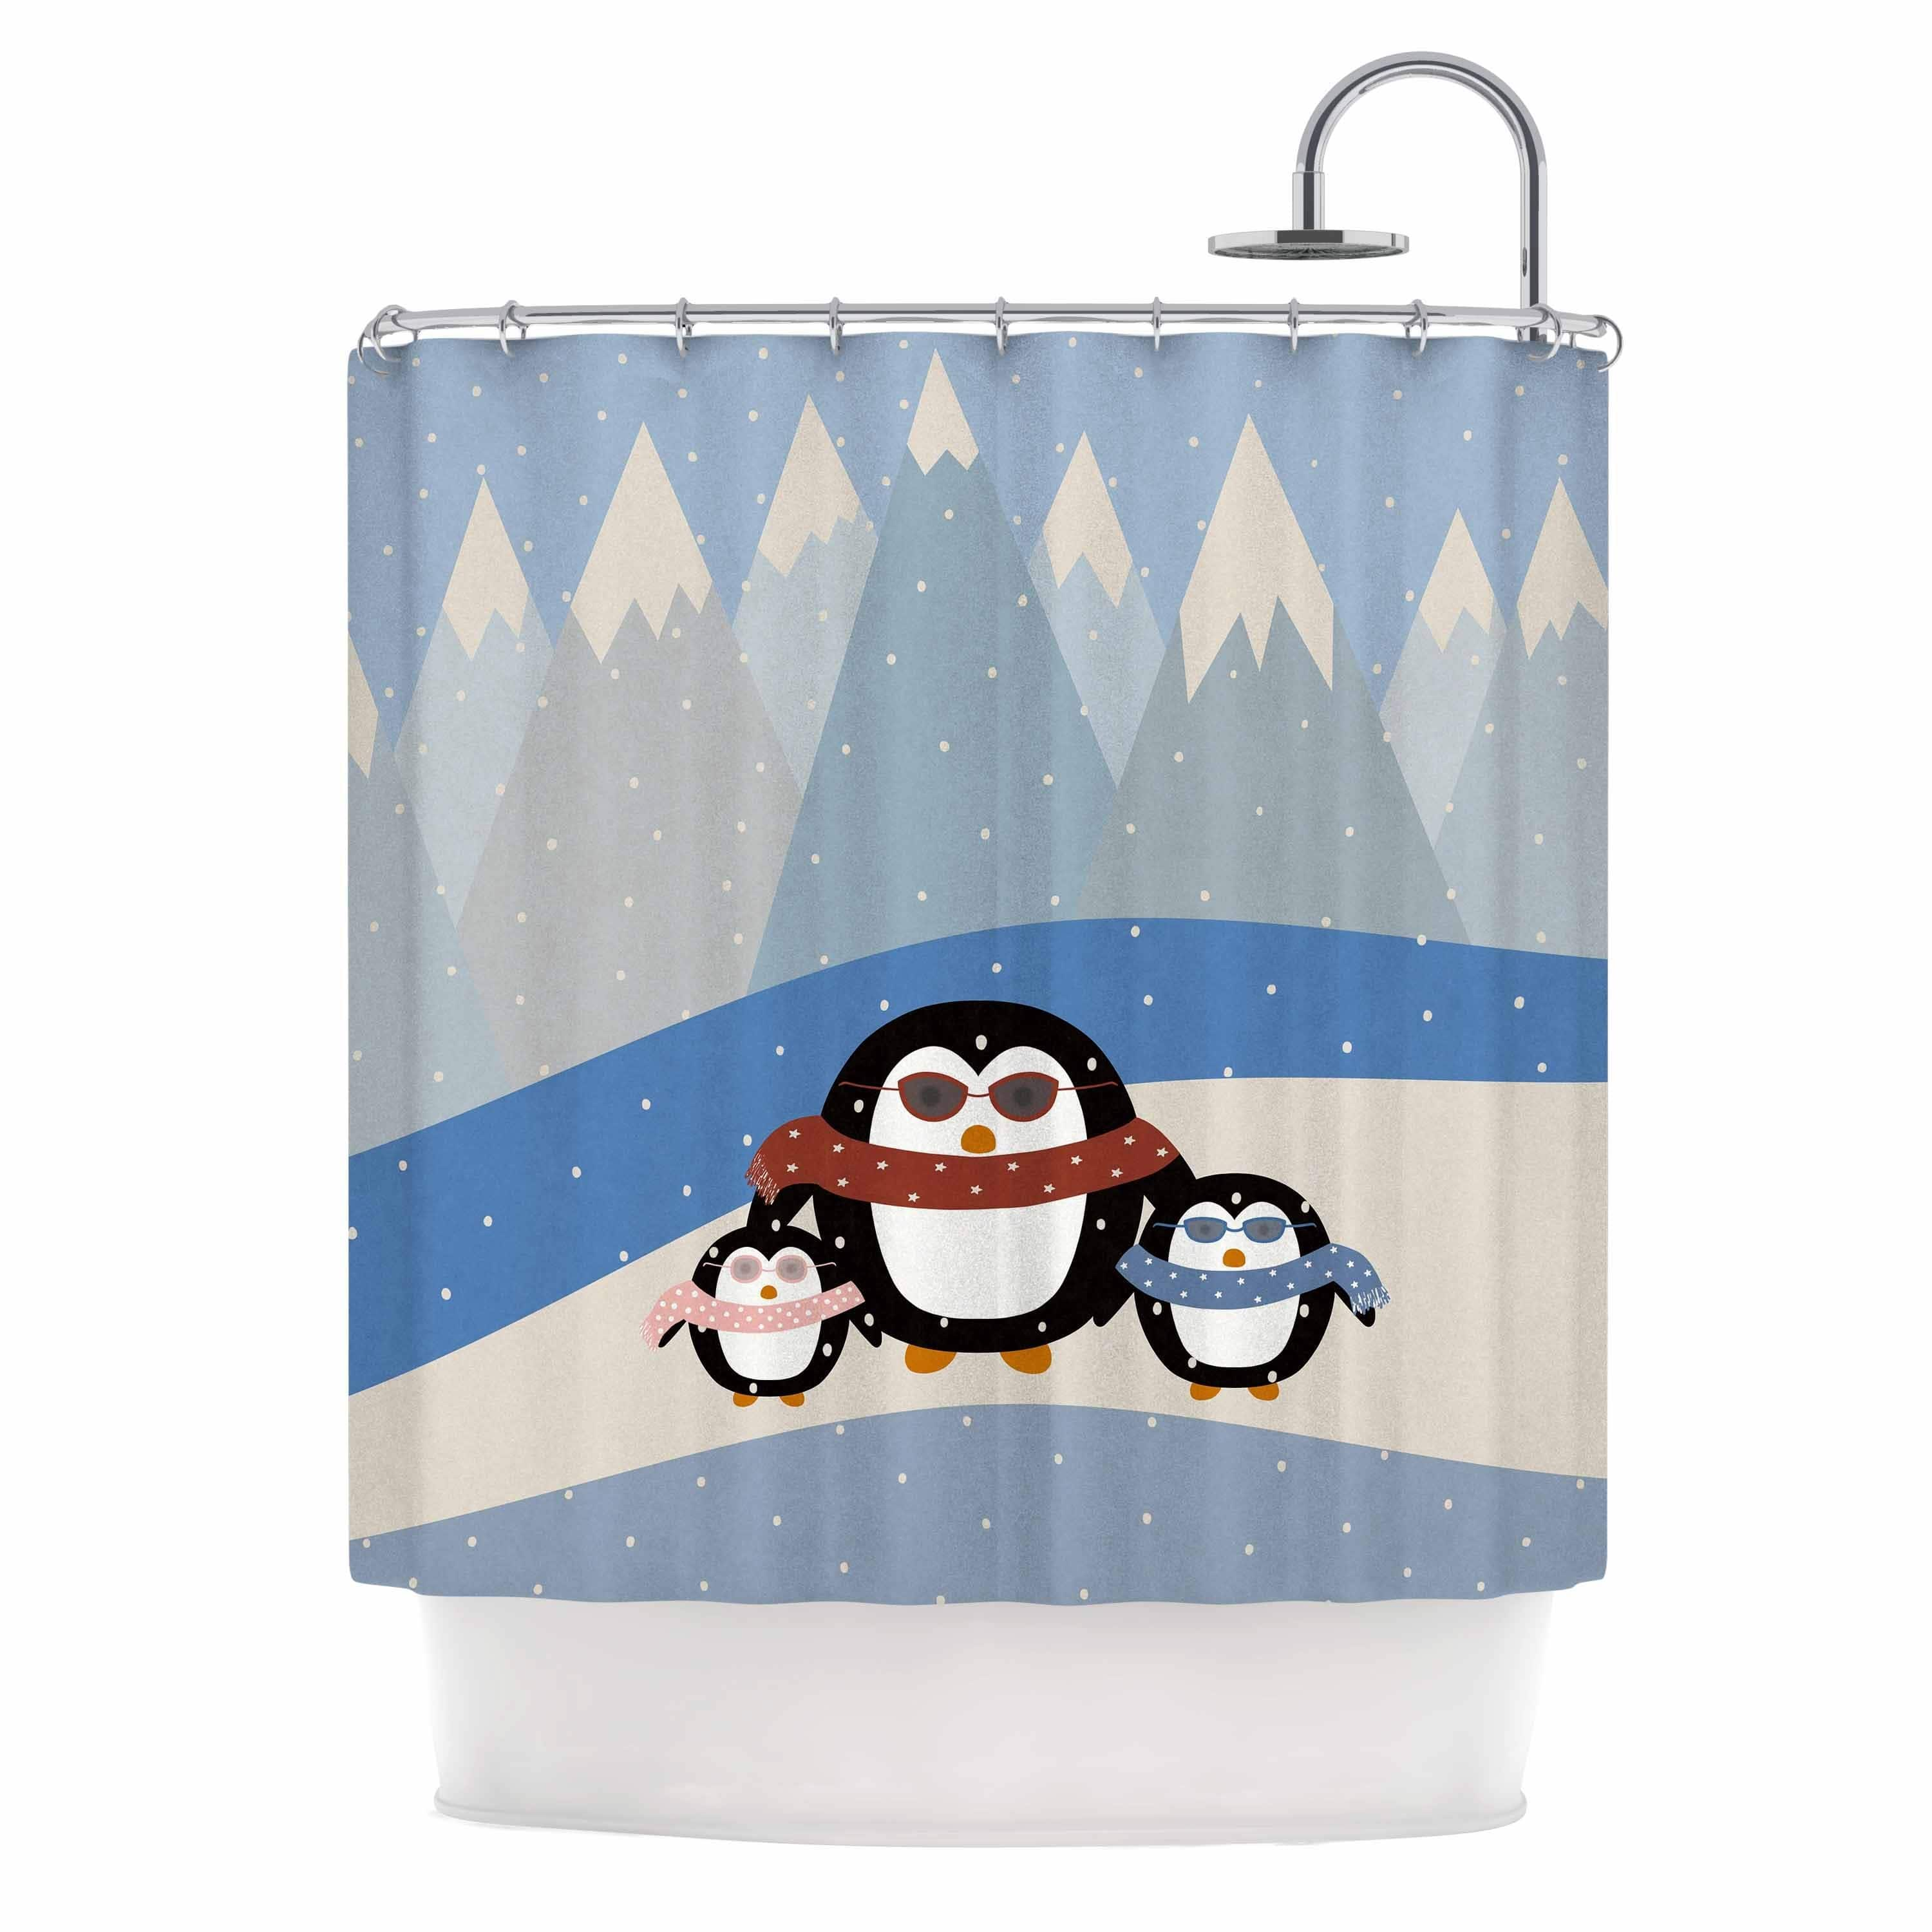 Kess InHouse  Cristina bianco Design Cute Penguins Black ...